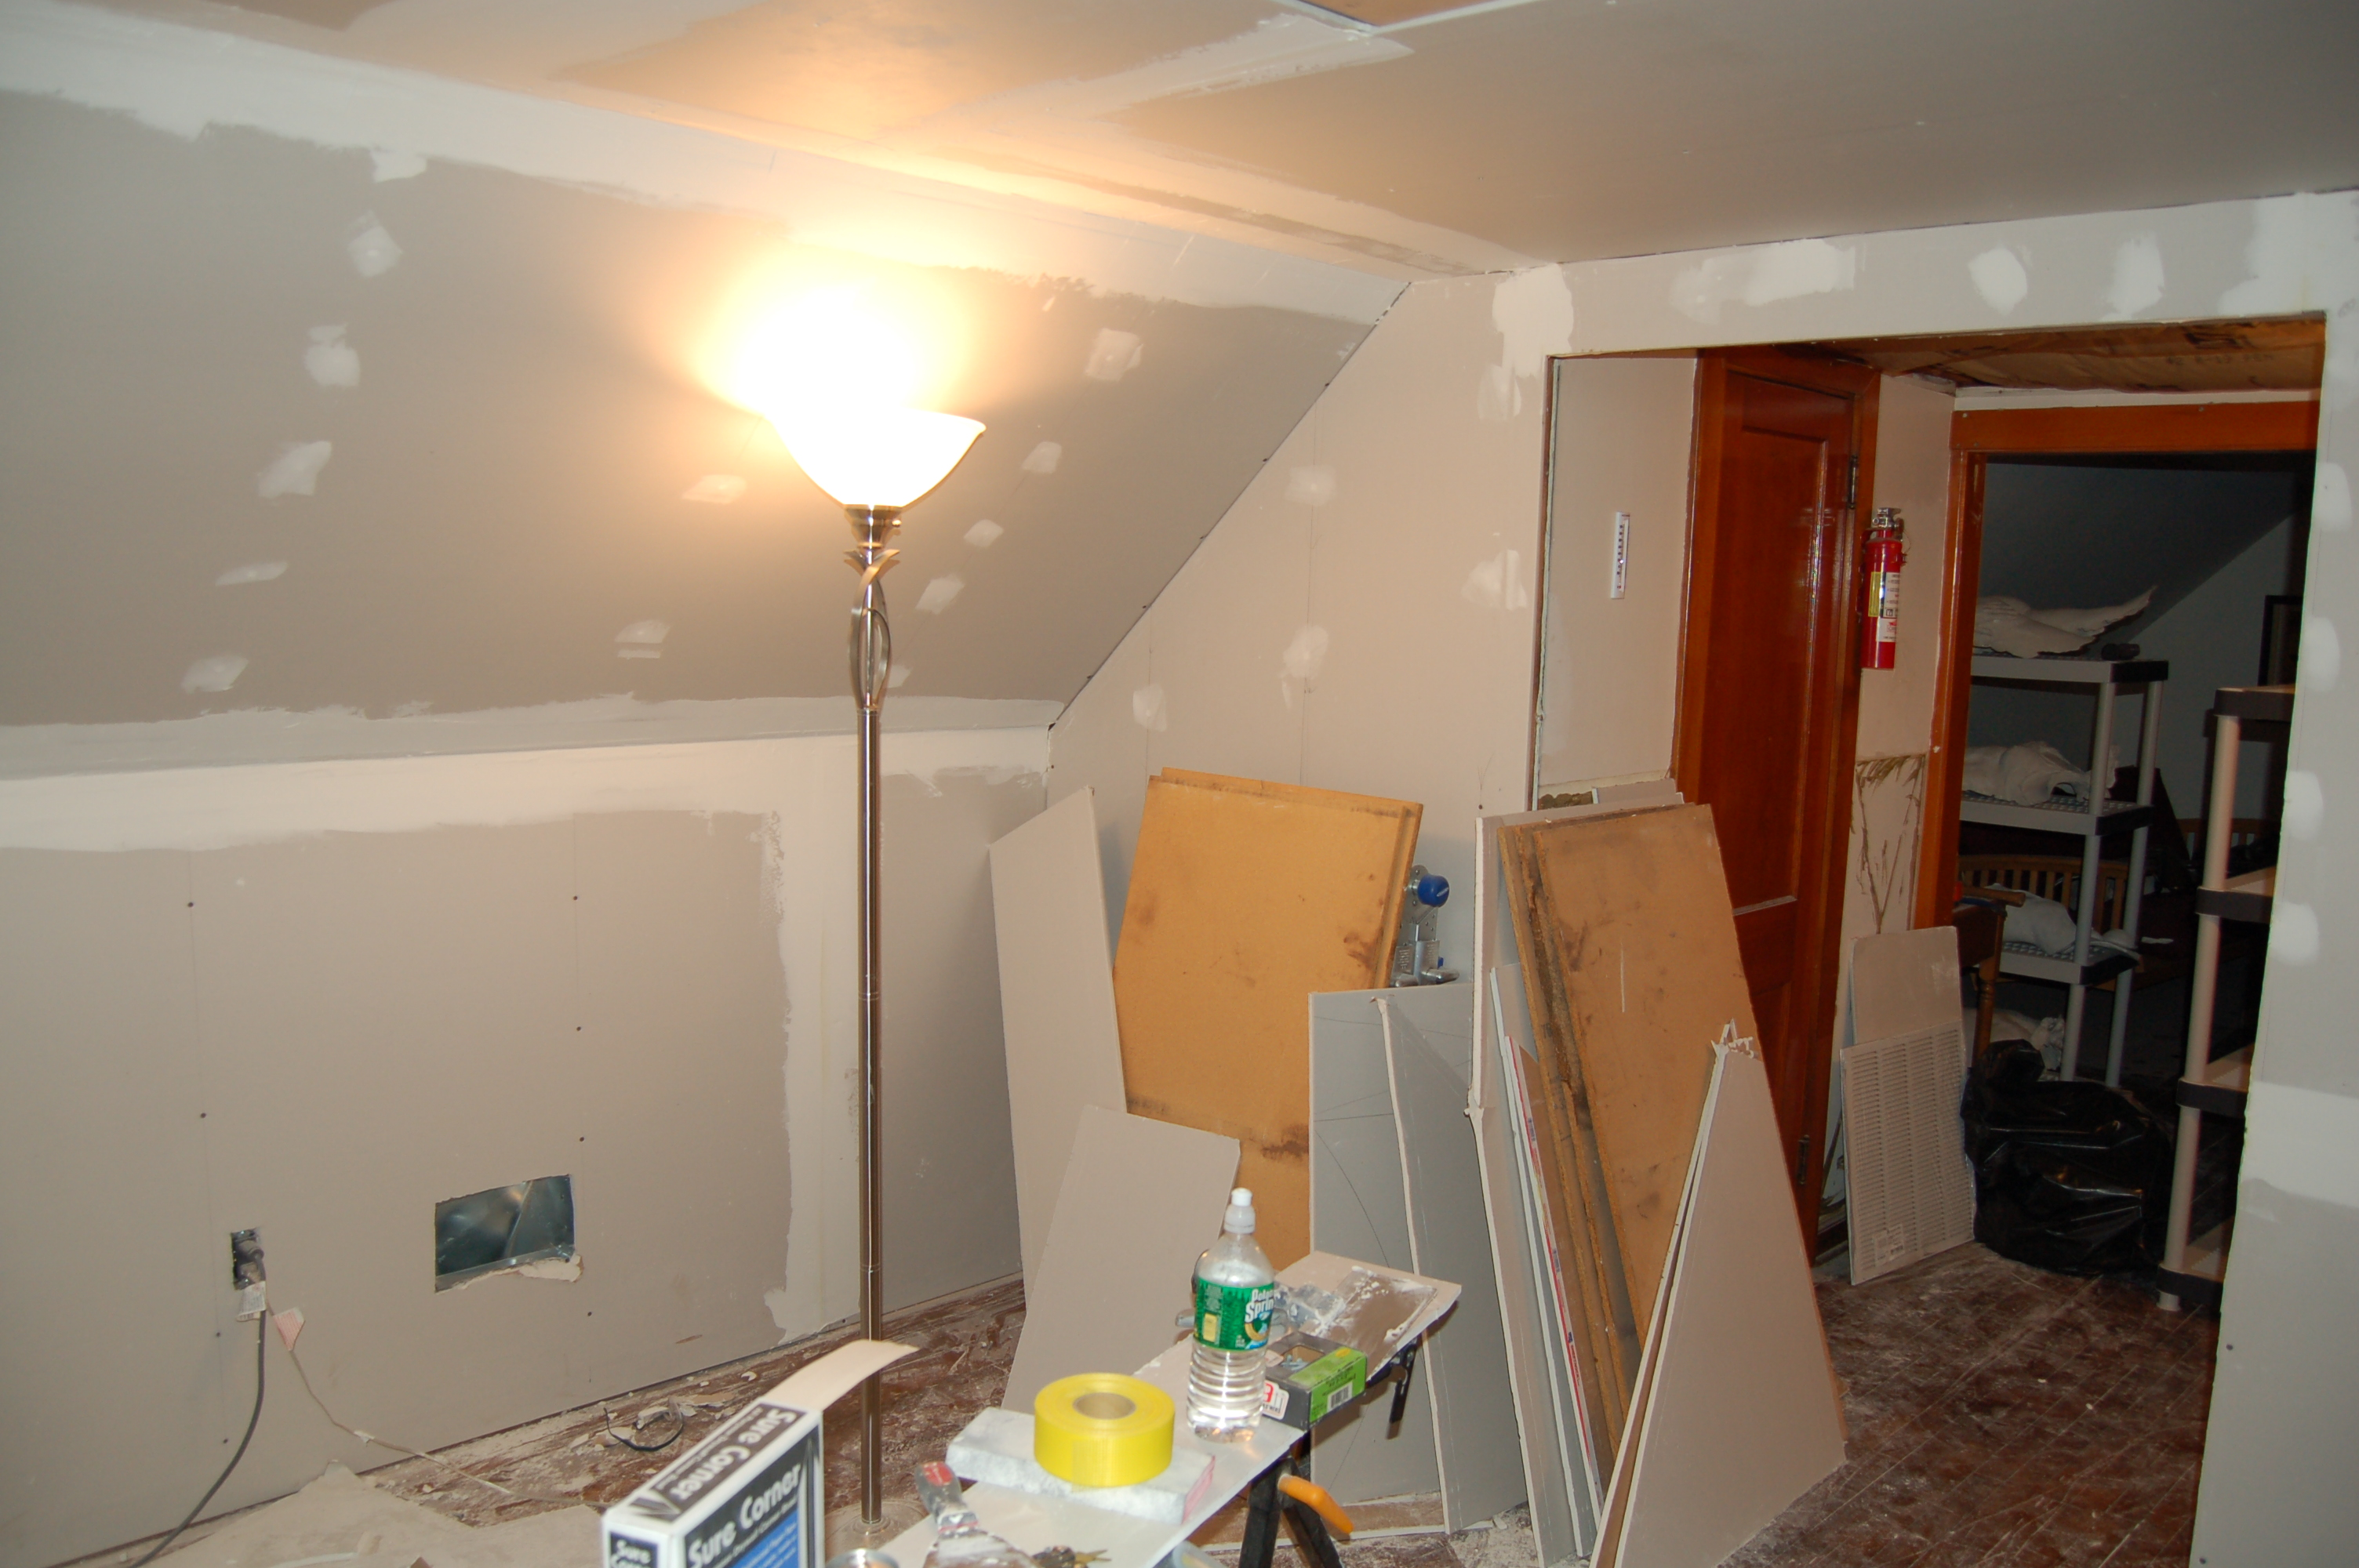 Sheetrock and Spackle